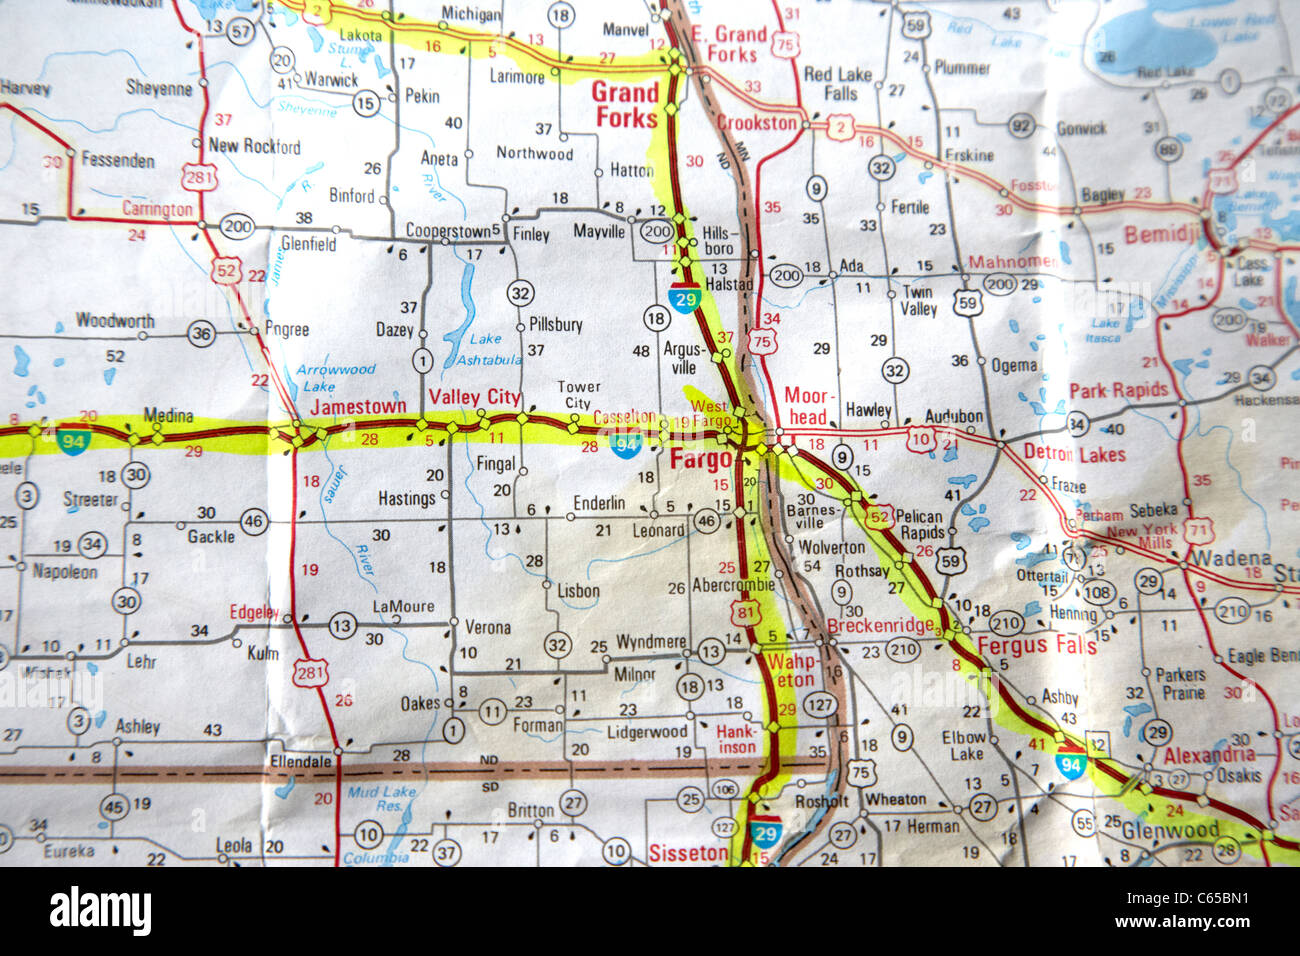 Road Map Of The Usa With Routes Planned Out In Highlighter Through – Road Map Nd